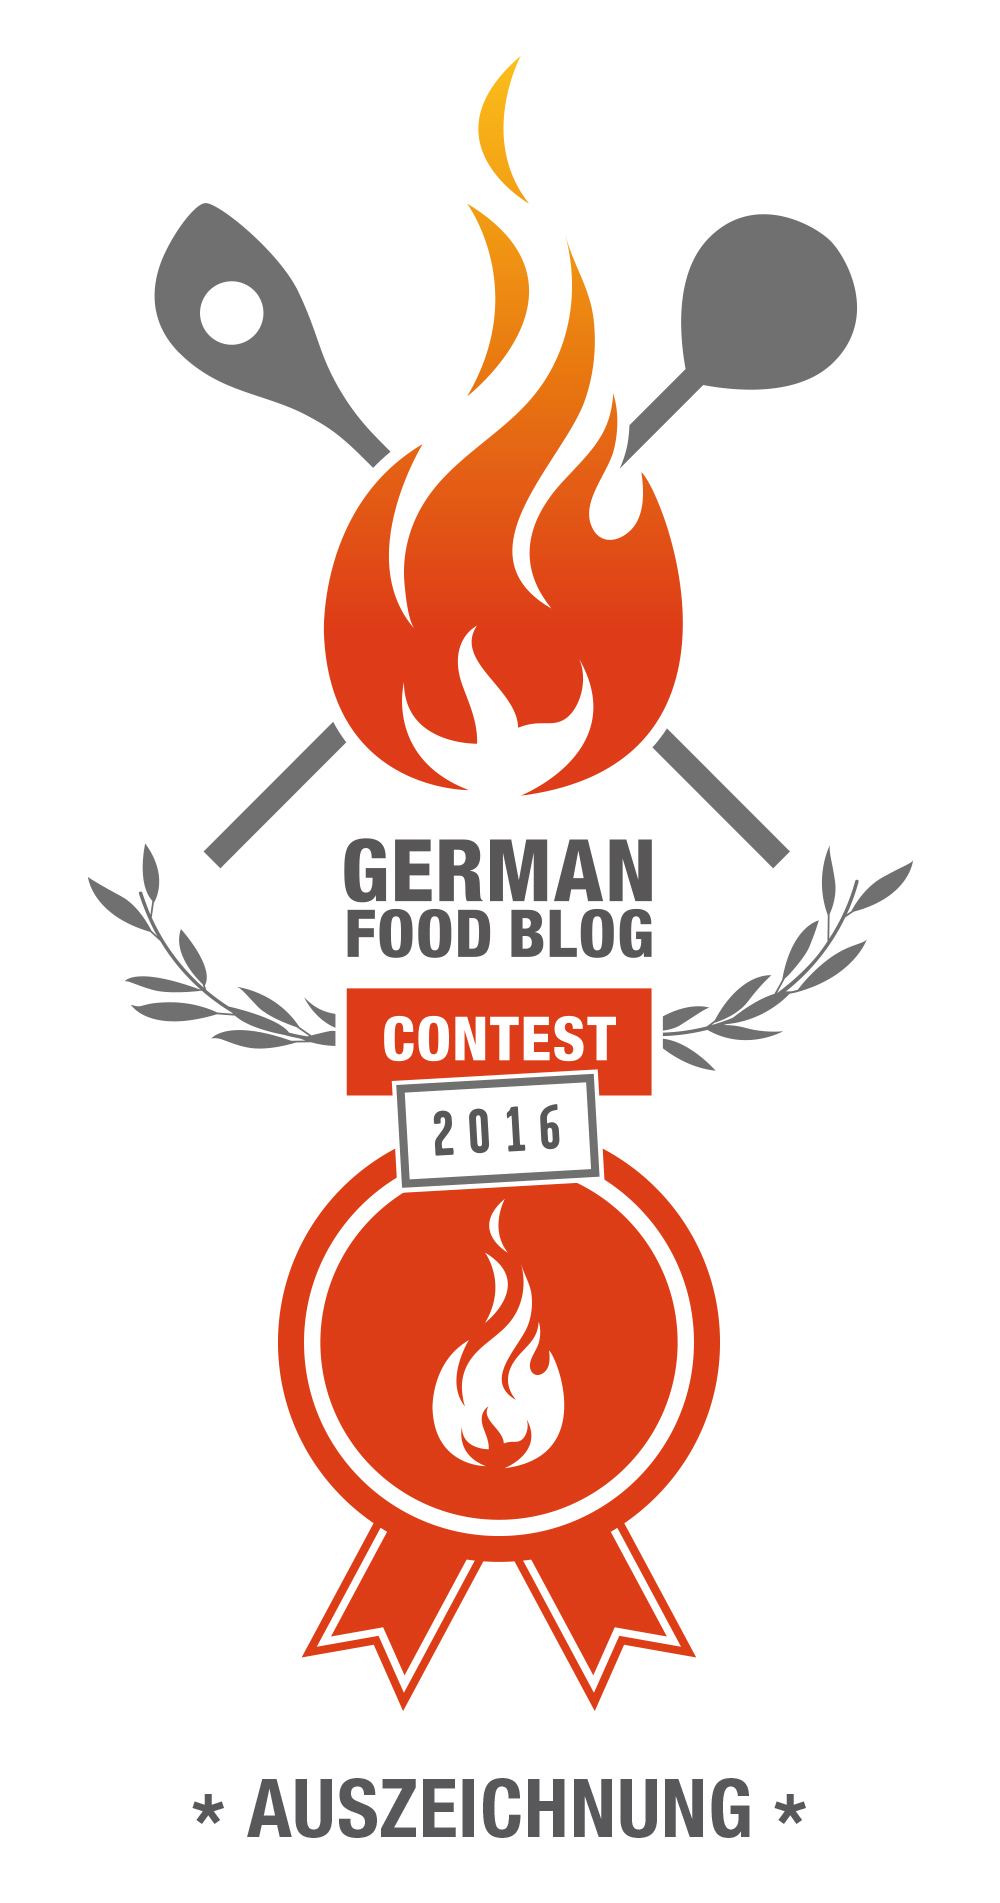 German Food Blog Contest